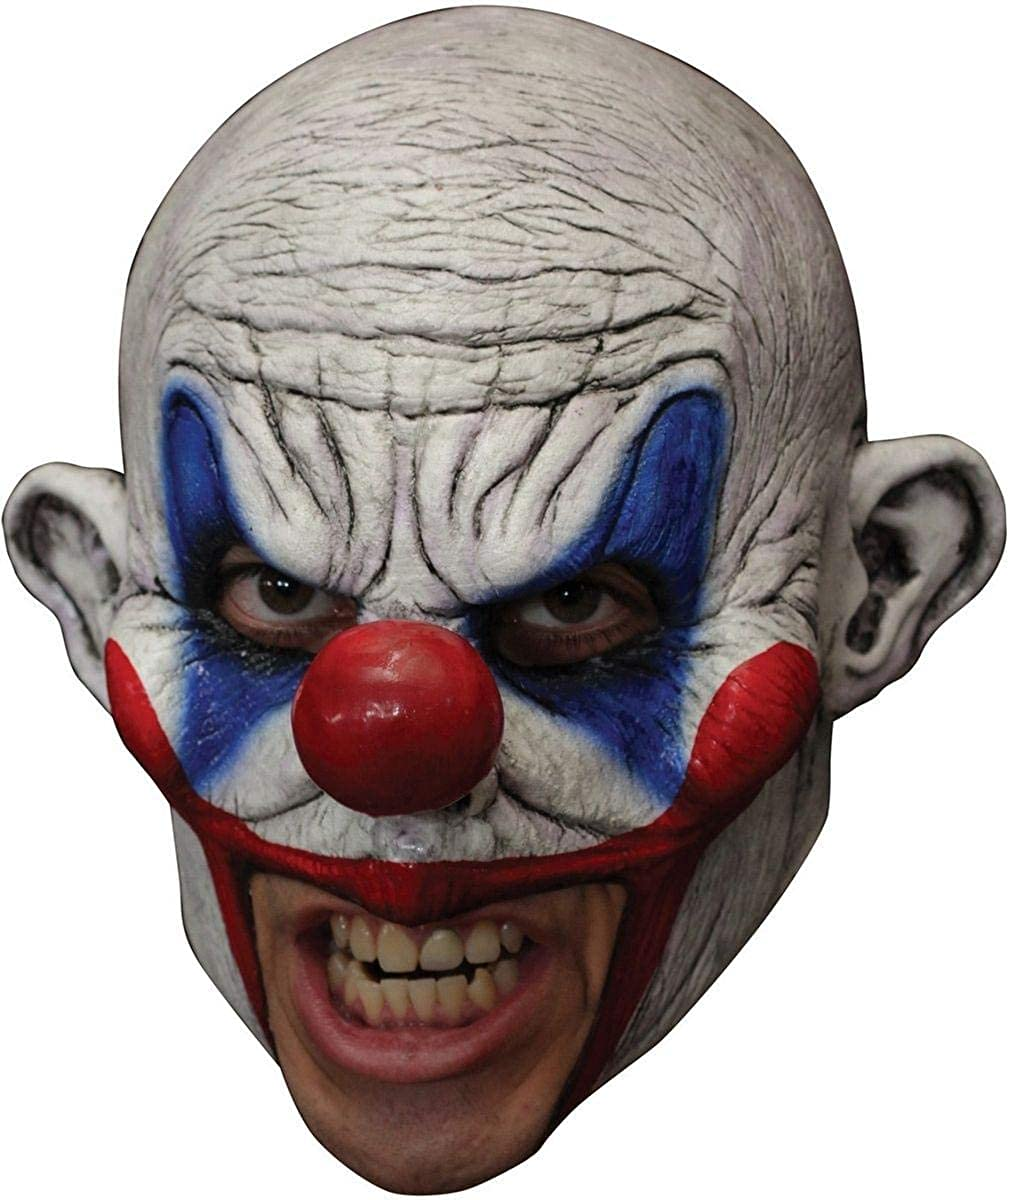 Ghoulish 2021 Productions - Overseas parallel import regular item Mask Clooney Clown